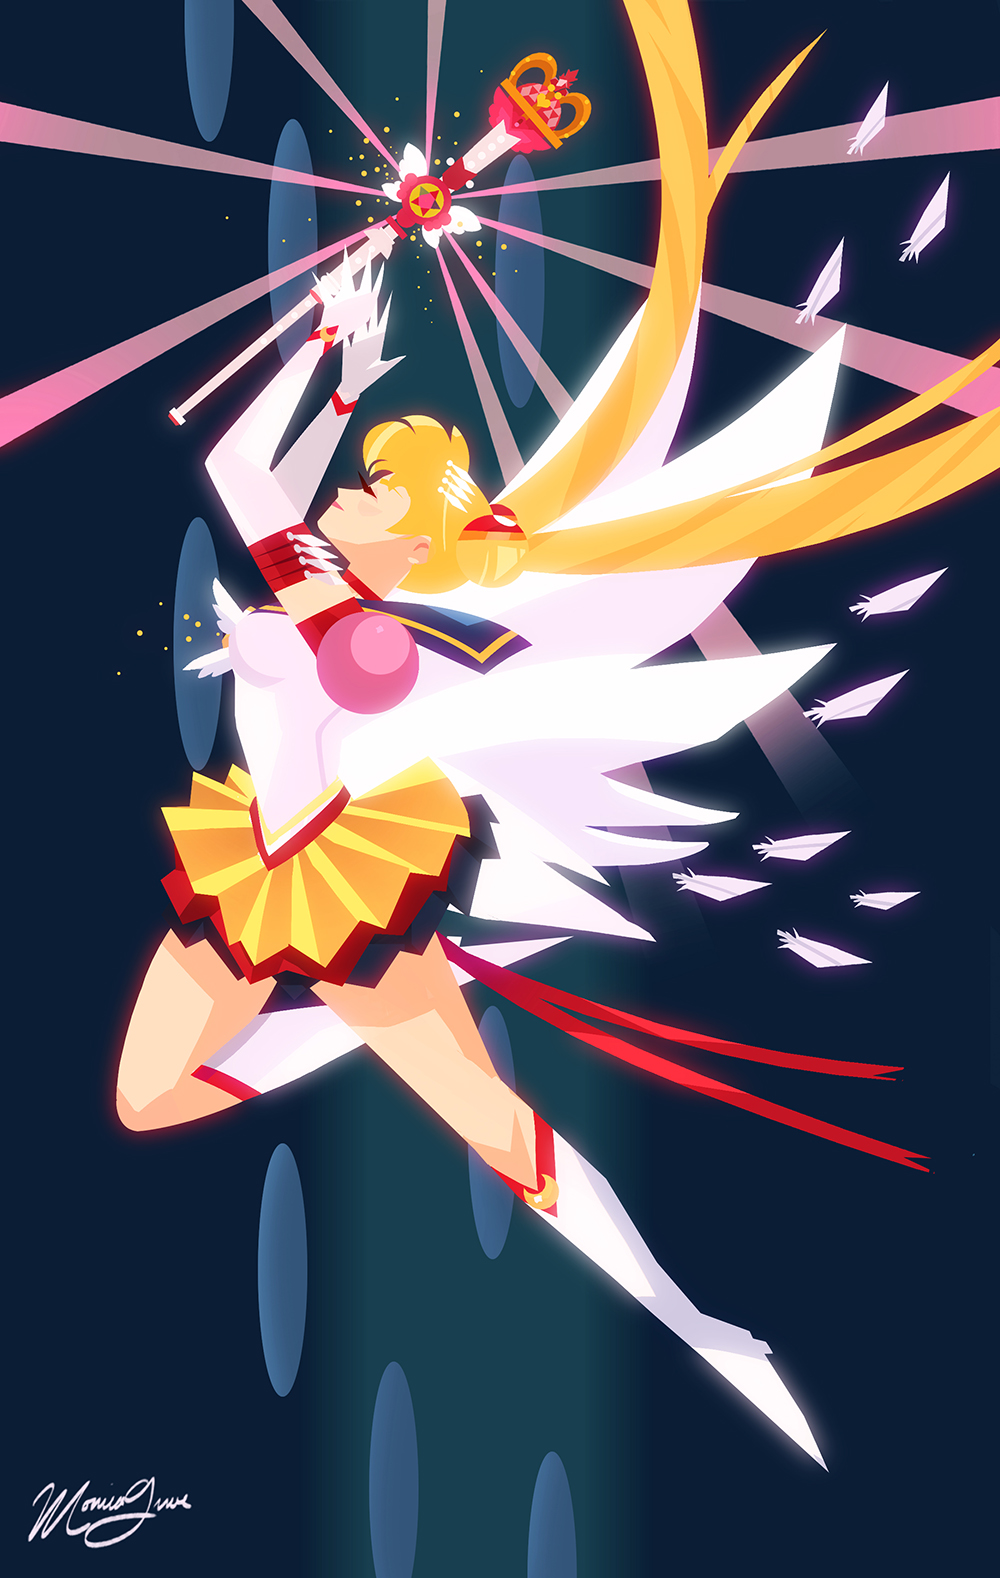 Moon Eternal / Sailor Moon 20th Anniversary Show